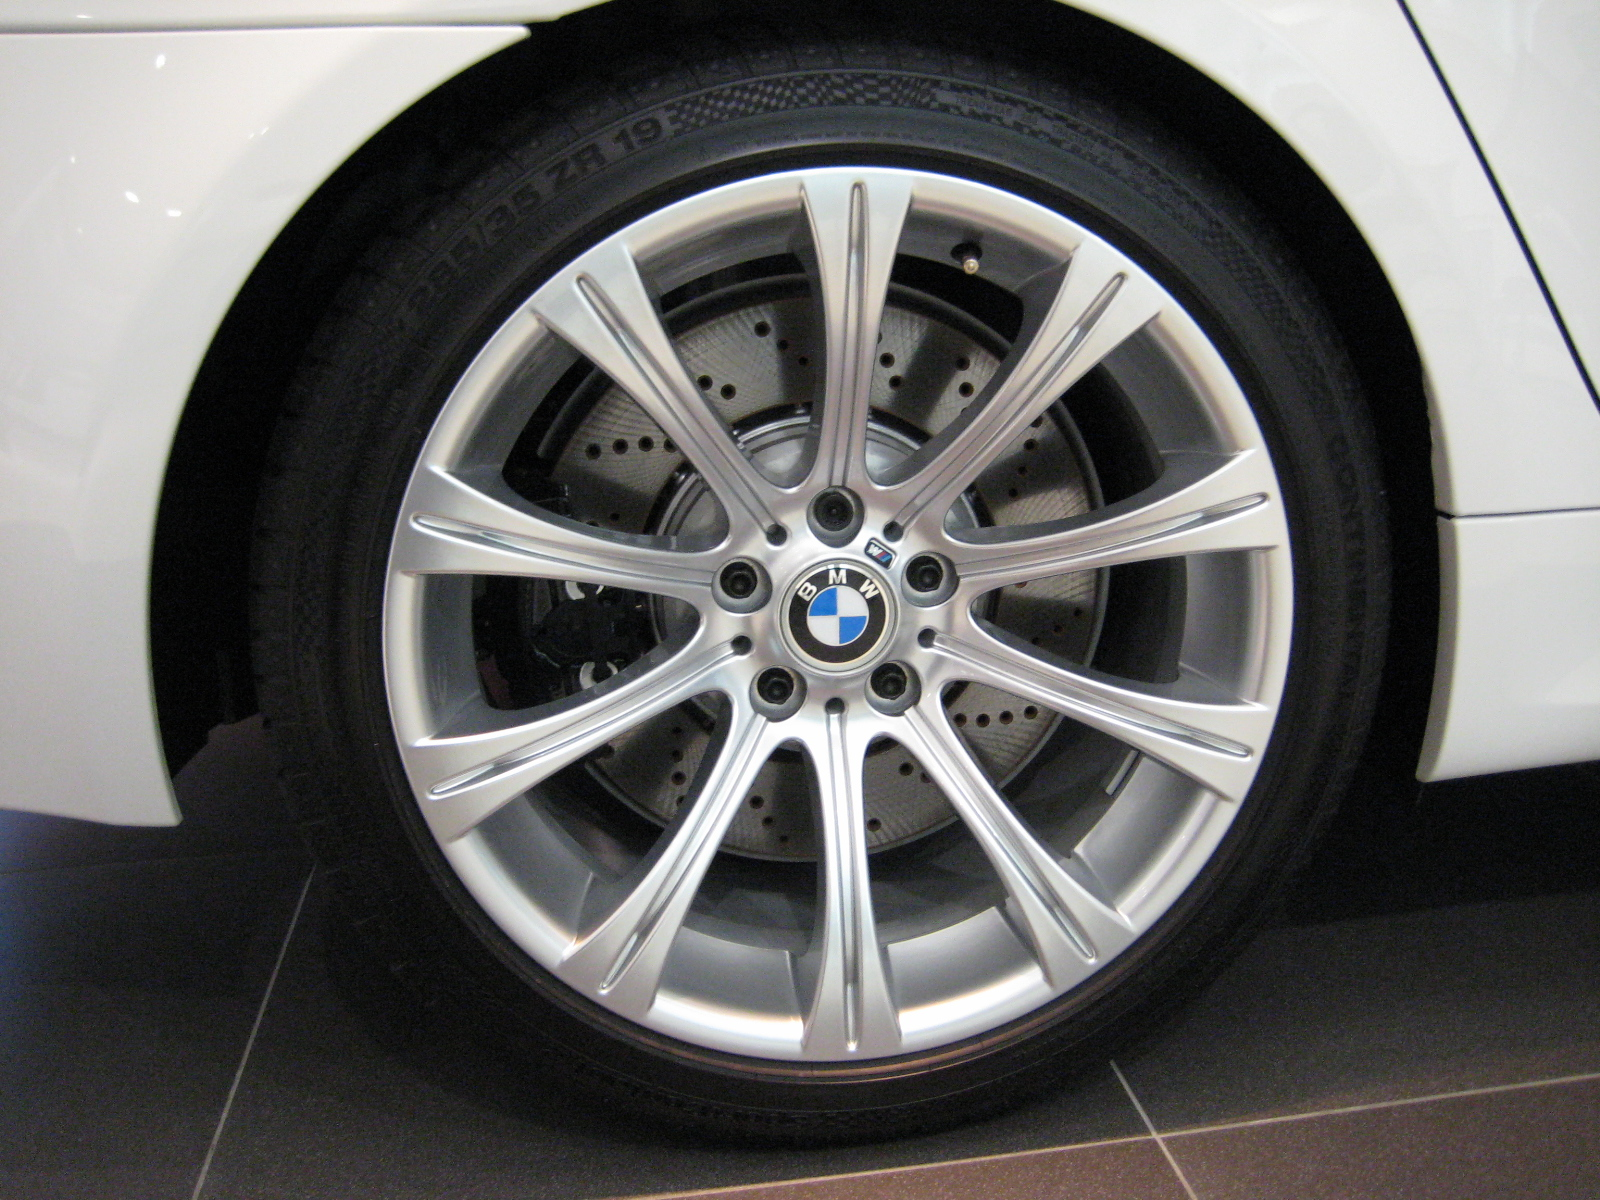 Alloy Wheels Without Spigot Rings